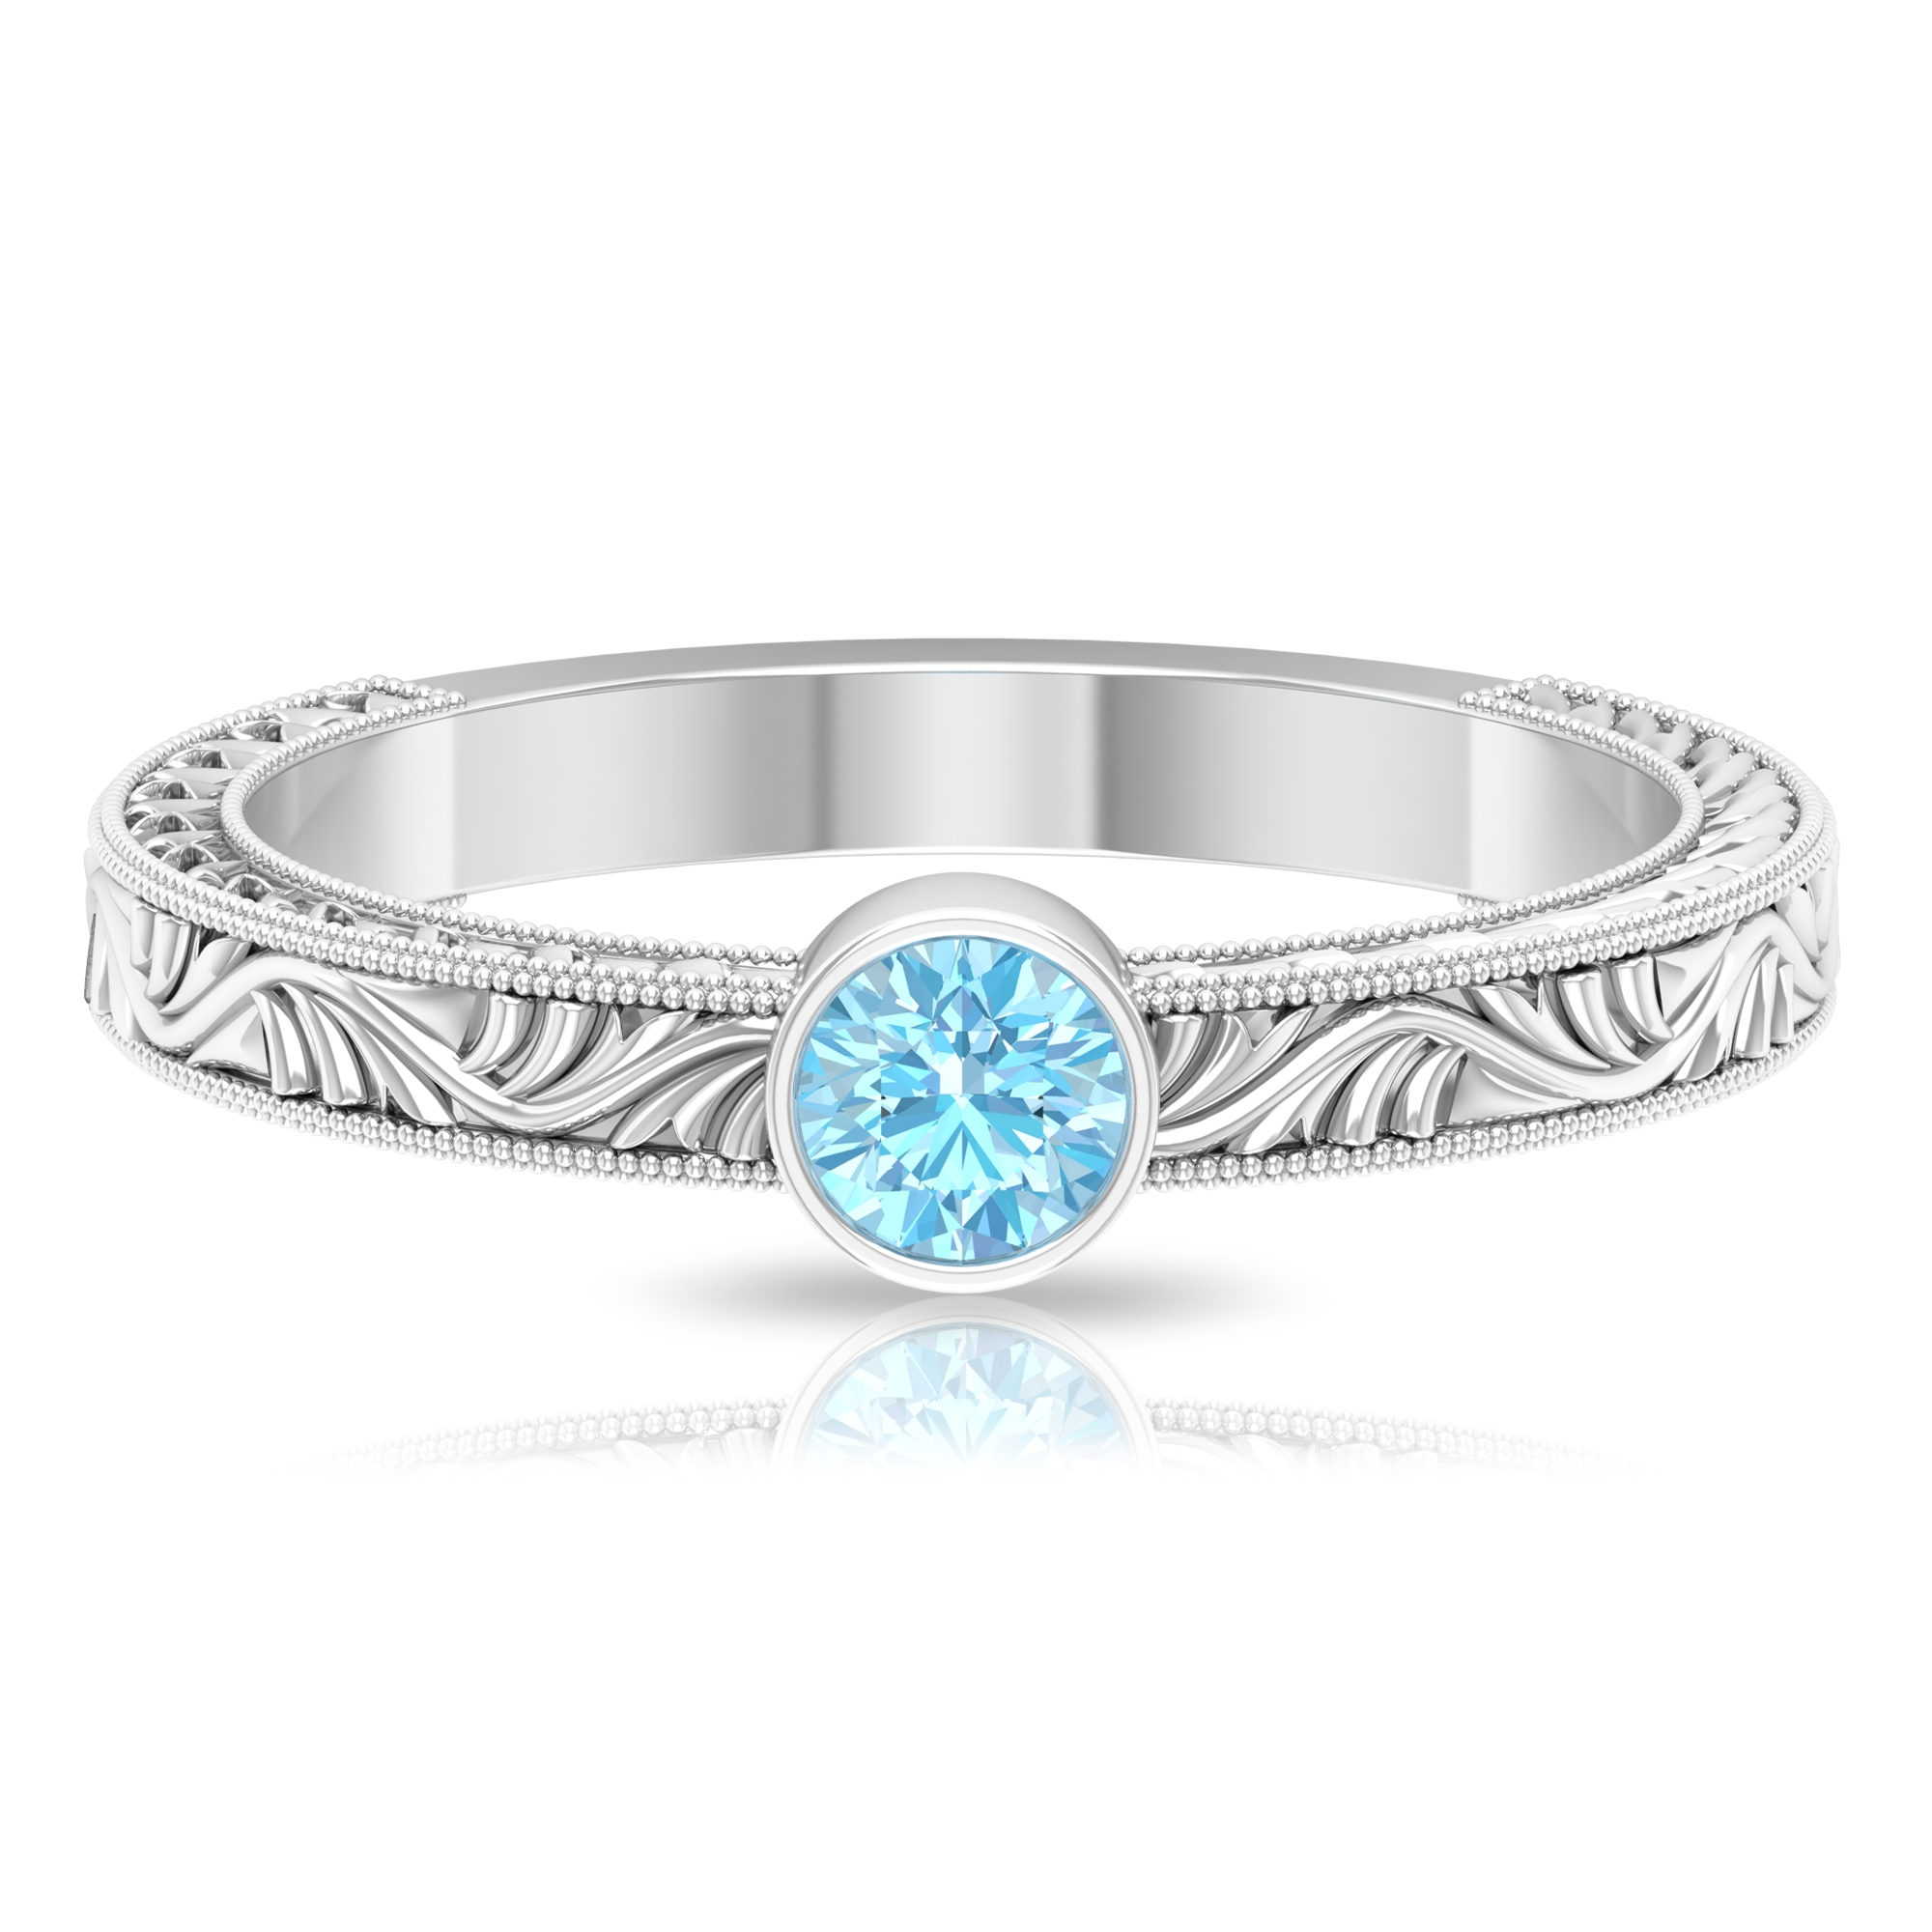 4 MM Round Shape Aquamarine Solitaire Ring in Bezel Setting with Gold Milgrain Engraved Details